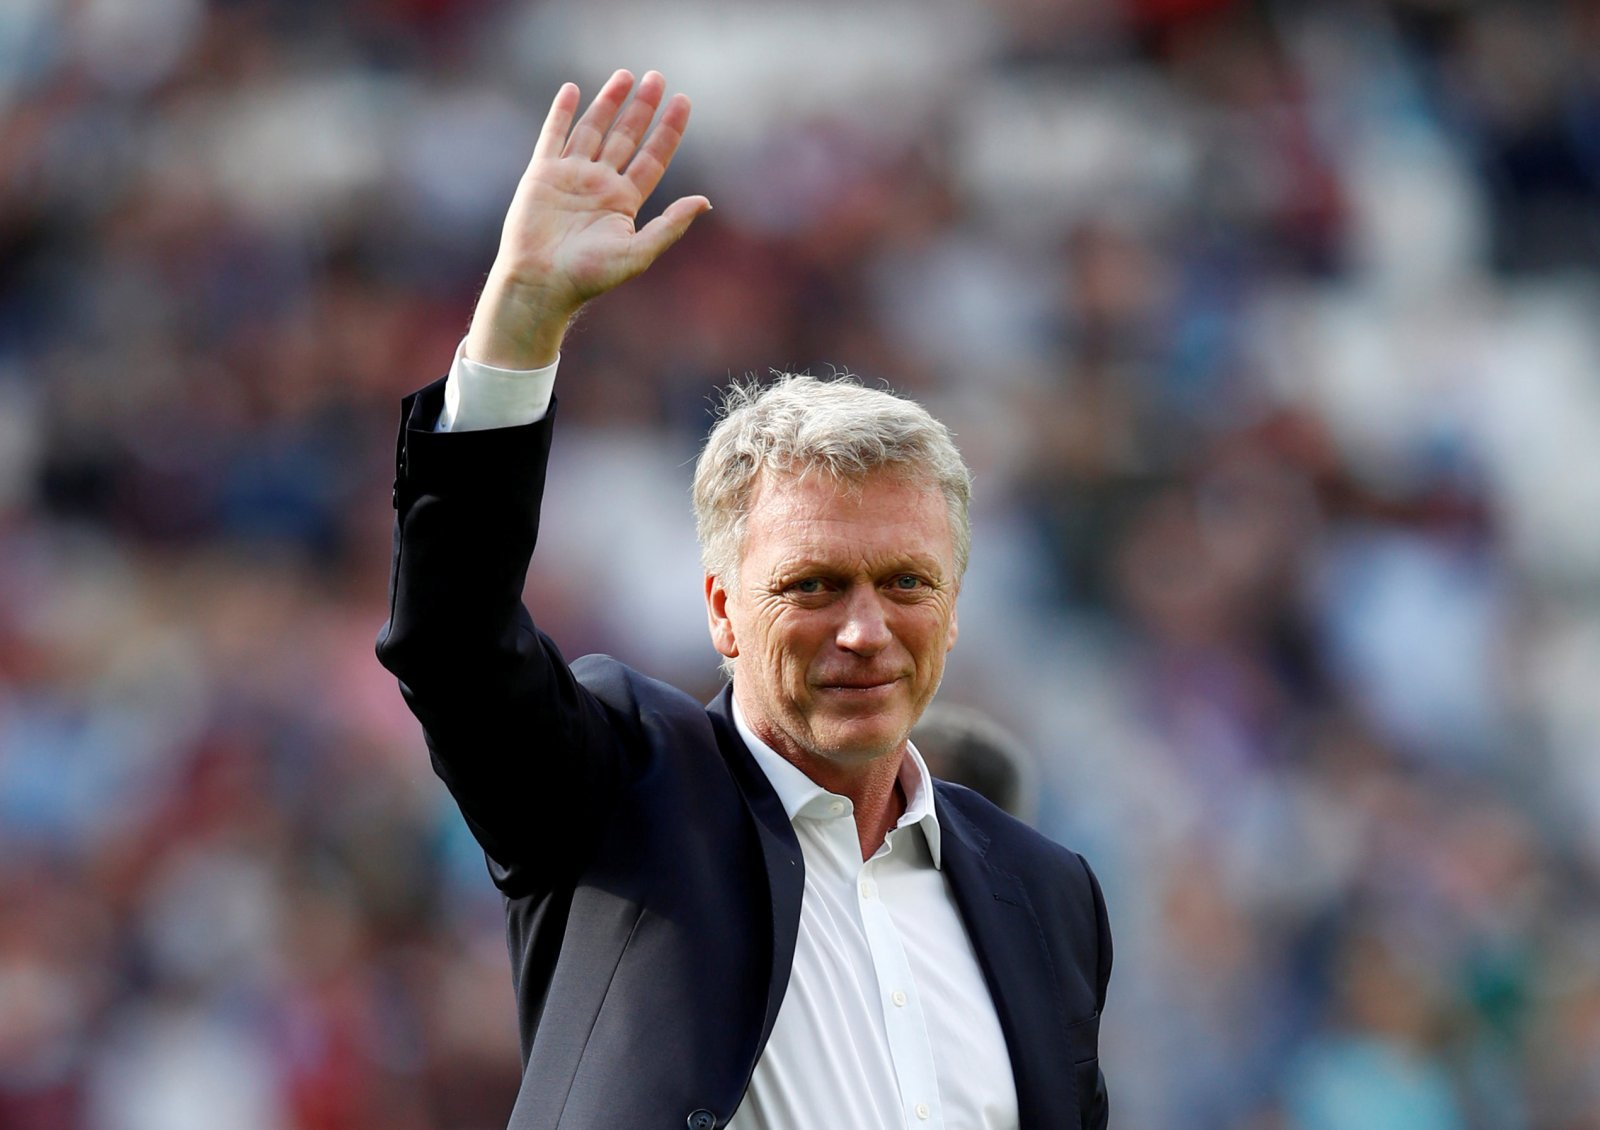 Peter Hall lauds David Moyes with hint of irony following Marko Arnautovic's development at West Ham